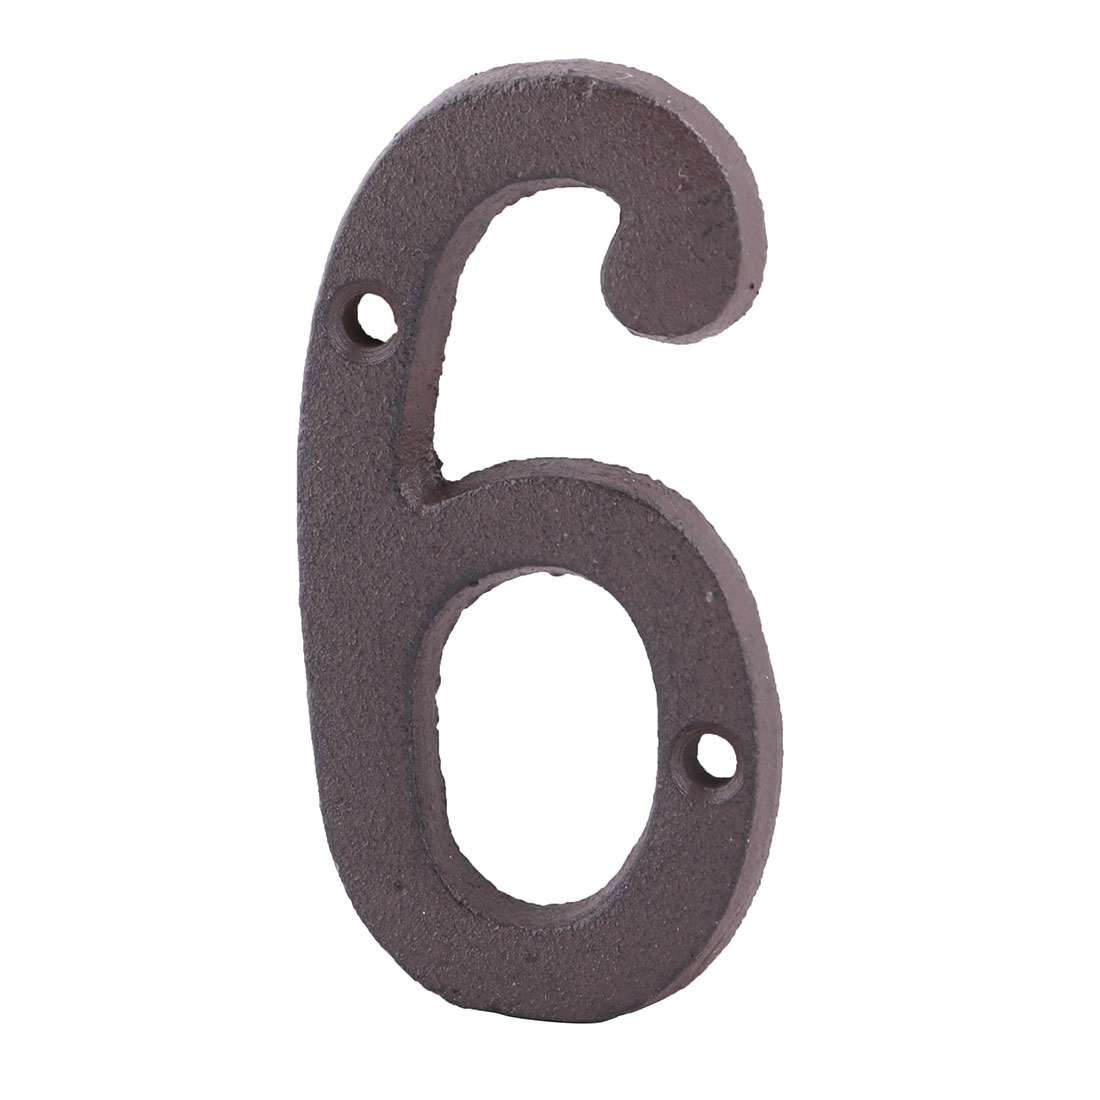 Home Street Cast Iron 6 Shaped Plate Number Door Wall Mounting Entrance Label